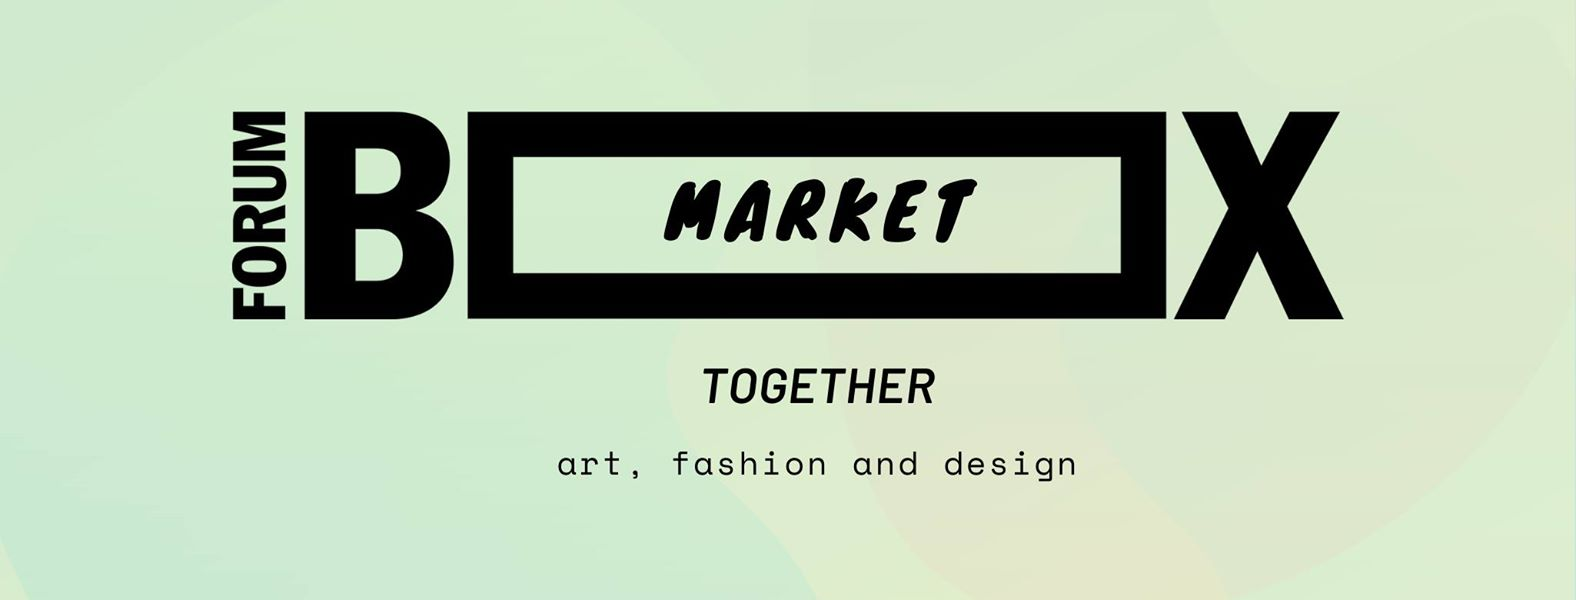 Forum Box Market Together – Art, Fashion and Design